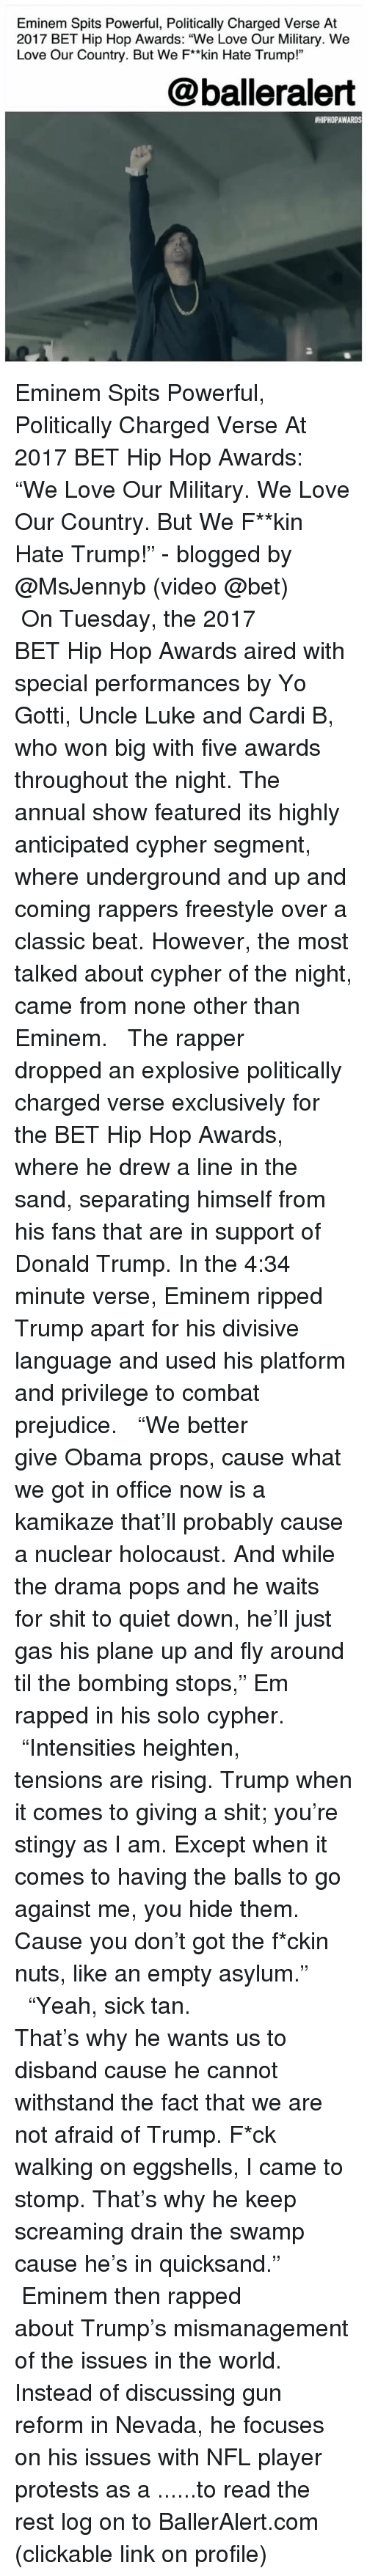 """quicksand: Eminem Spits Powerful, Politically Charged Verse At  2017 BET Hip Hop Awards: """"We Love Our Military. We  Love Our Country. But We F*kin Hate Trump!""""  @balleralert  #HIPHOPAWARDS  2 Eminem Spits Powerful, Politically Charged Verse At 2017 BET Hip Hop Awards: """"We Love Our Military. We Love Our Country. But We F**kin Hate Trump!"""" - blogged by @MsJennyb (video @bet) ⠀⠀⠀⠀⠀⠀⠀ ⠀⠀⠀⠀⠀⠀⠀ On Tuesday, the 2017 BET Hip Hop Awards aired with special performances by Yo Gotti, Uncle Luke and Cardi B, who won big with five awards throughout the night. The annual show featured its highly anticipated cypher segment, where underground and up and coming rappers freestyle over a classic beat. However, the most talked about cypher of the night, came from none other than Eminem. ⠀⠀⠀⠀⠀⠀⠀ ⠀⠀⠀⠀⠀⠀⠀ The rapper dropped an explosive politically charged verse exclusively for the BET Hip Hop Awards, where he drew a line in the sand, separating himself from his fans that are in support of Donald Trump. In the 4:34 minute verse, Eminem ripped Trump apart for his divisive language and used his platform and privilege to combat prejudice. ⠀⠀⠀⠀⠀⠀⠀ ⠀⠀⠀⠀⠀⠀⠀ """"We better give Obama props, cause what we got in office now is a kamikaze that'll probably cause a nuclear holocaust. And while the drama pops and he waits for shit to quiet down, he'll just gas his plane up and fly around til the bombing stops,"""" Em rapped in his solo cypher. ⠀⠀⠀⠀⠀⠀⠀ ⠀⠀⠀⠀⠀⠀⠀ """"Intensities heighten, tensions are rising. Trump when it comes to giving a shit; you're stingy as I am. Except when it comes to having the balls to go against me, you hide them. Cause you don't got the f*ckin nuts, like an empty asylum."""" ⠀⠀⠀⠀⠀⠀⠀ ⠀⠀⠀⠀⠀⠀⠀ """"Yeah, sick tan. That's why he wants us to disband cause he cannot withstand the fact that we are not afraid of Trump. F*ck walking on eggshells, I came to stomp. That's why he keep screaming drain the swamp cause he's in quicksand."""" ⠀⠀⠀⠀⠀⠀⠀ ⠀⠀⠀⠀⠀⠀⠀ Eminem then rapped about Trump's mismanagement of the i"""